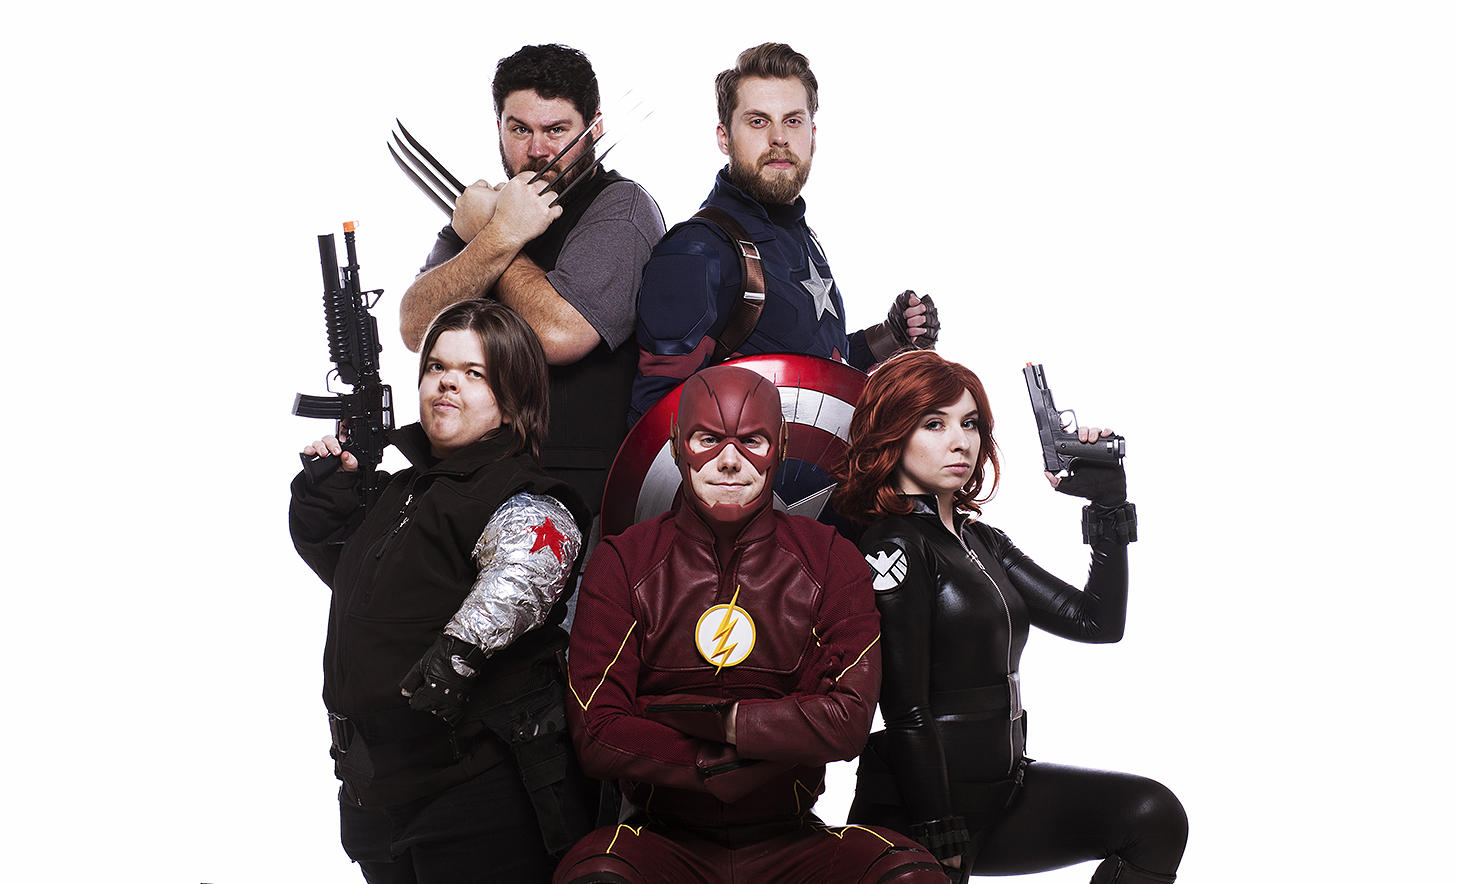 Fat Wolverine joins in with the New Avengers!